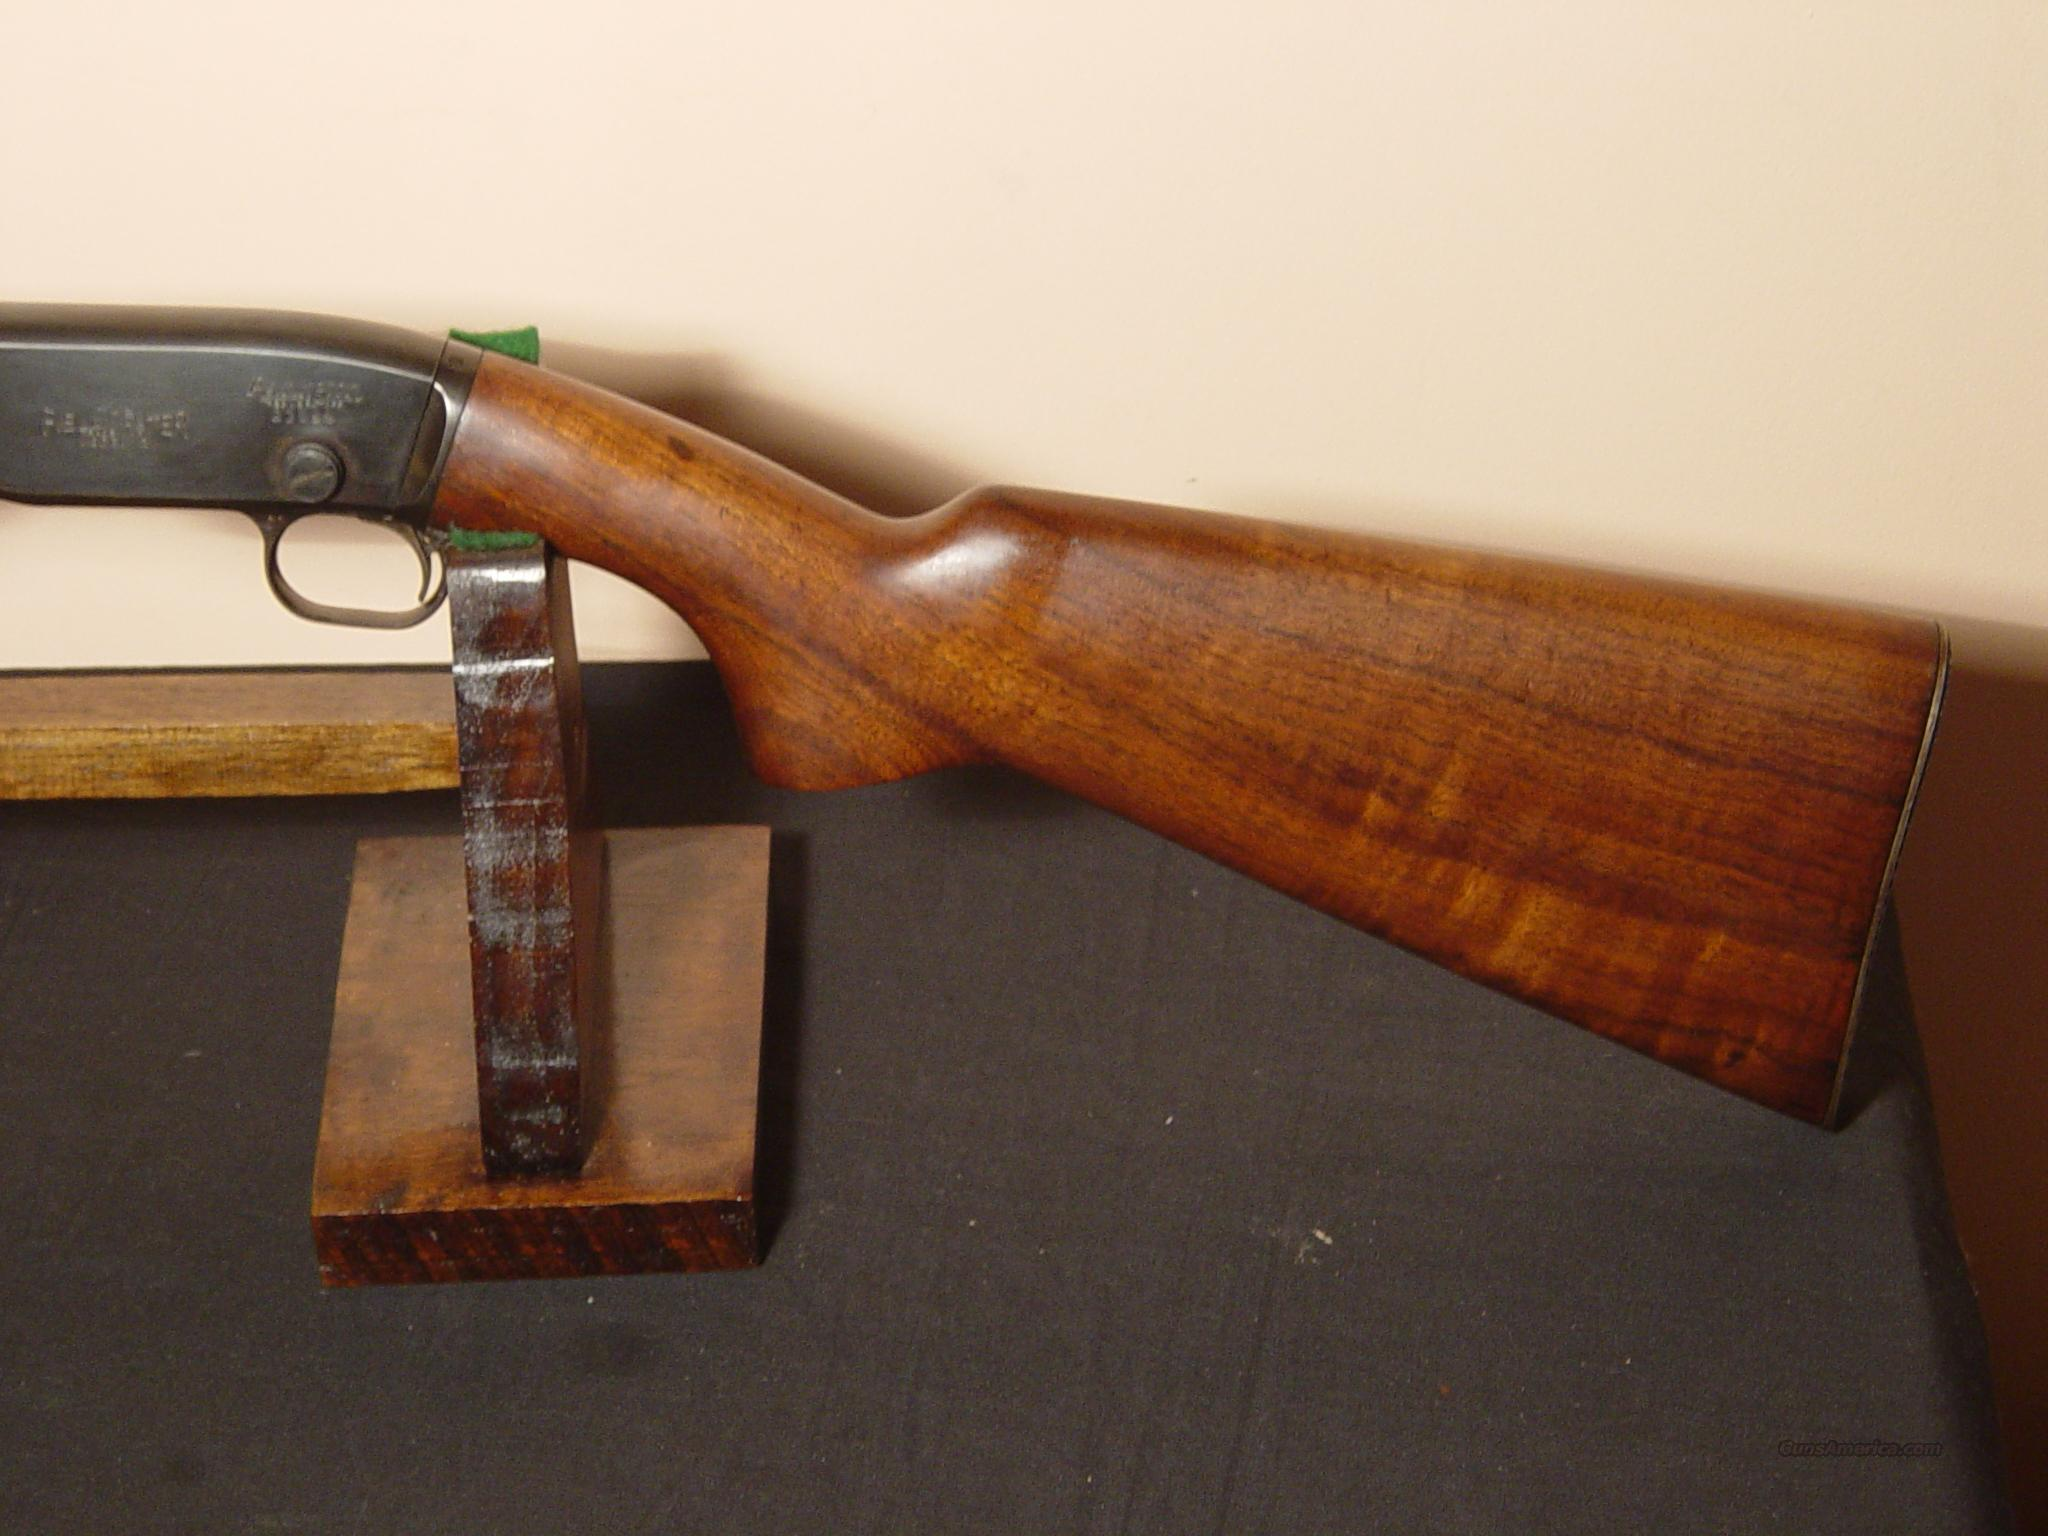 REMINGTON 121 PRE-WAR  Guns > Rifles > Remington Rifles - Modern > .22 Rimfire Models